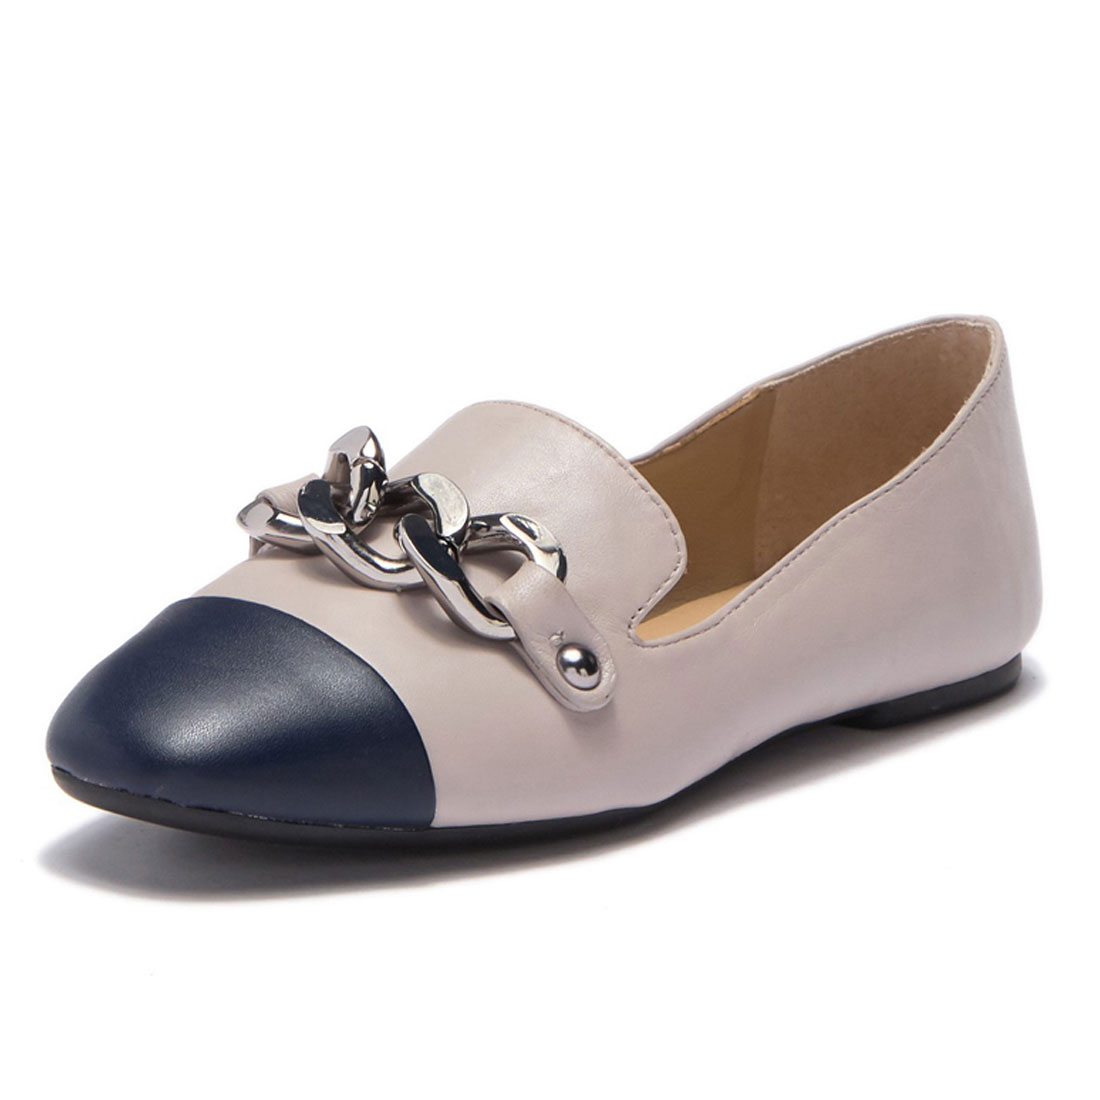 Your Own Brand High Quality Genuine Leather Casual Ladies Flat Shoes CS9244